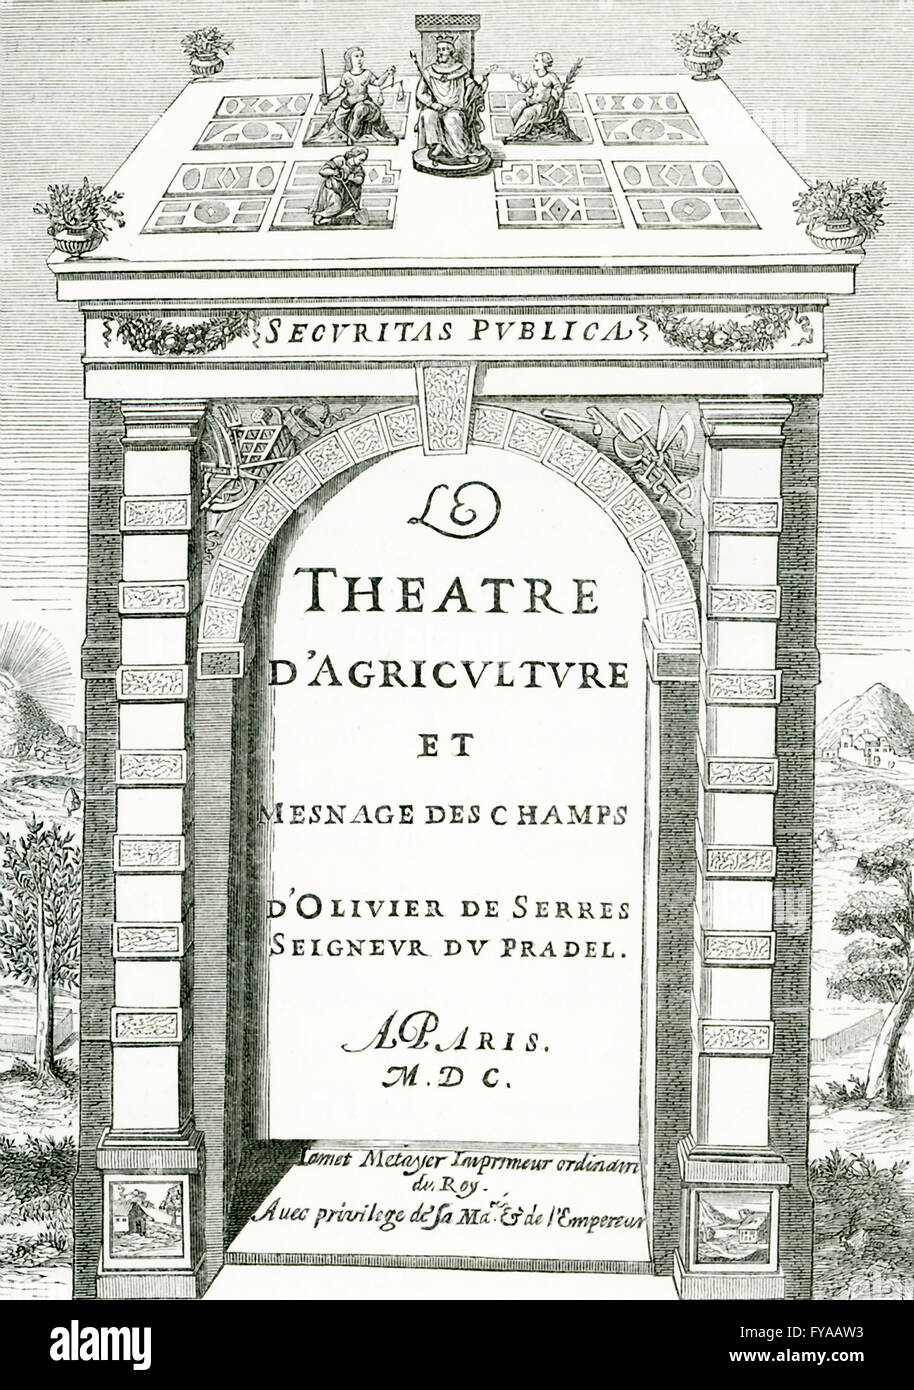 This frontispiece was for the Theater of Agriculture (French: Theatre d'Agriculture) by Olivier de Serres in - Stock Image